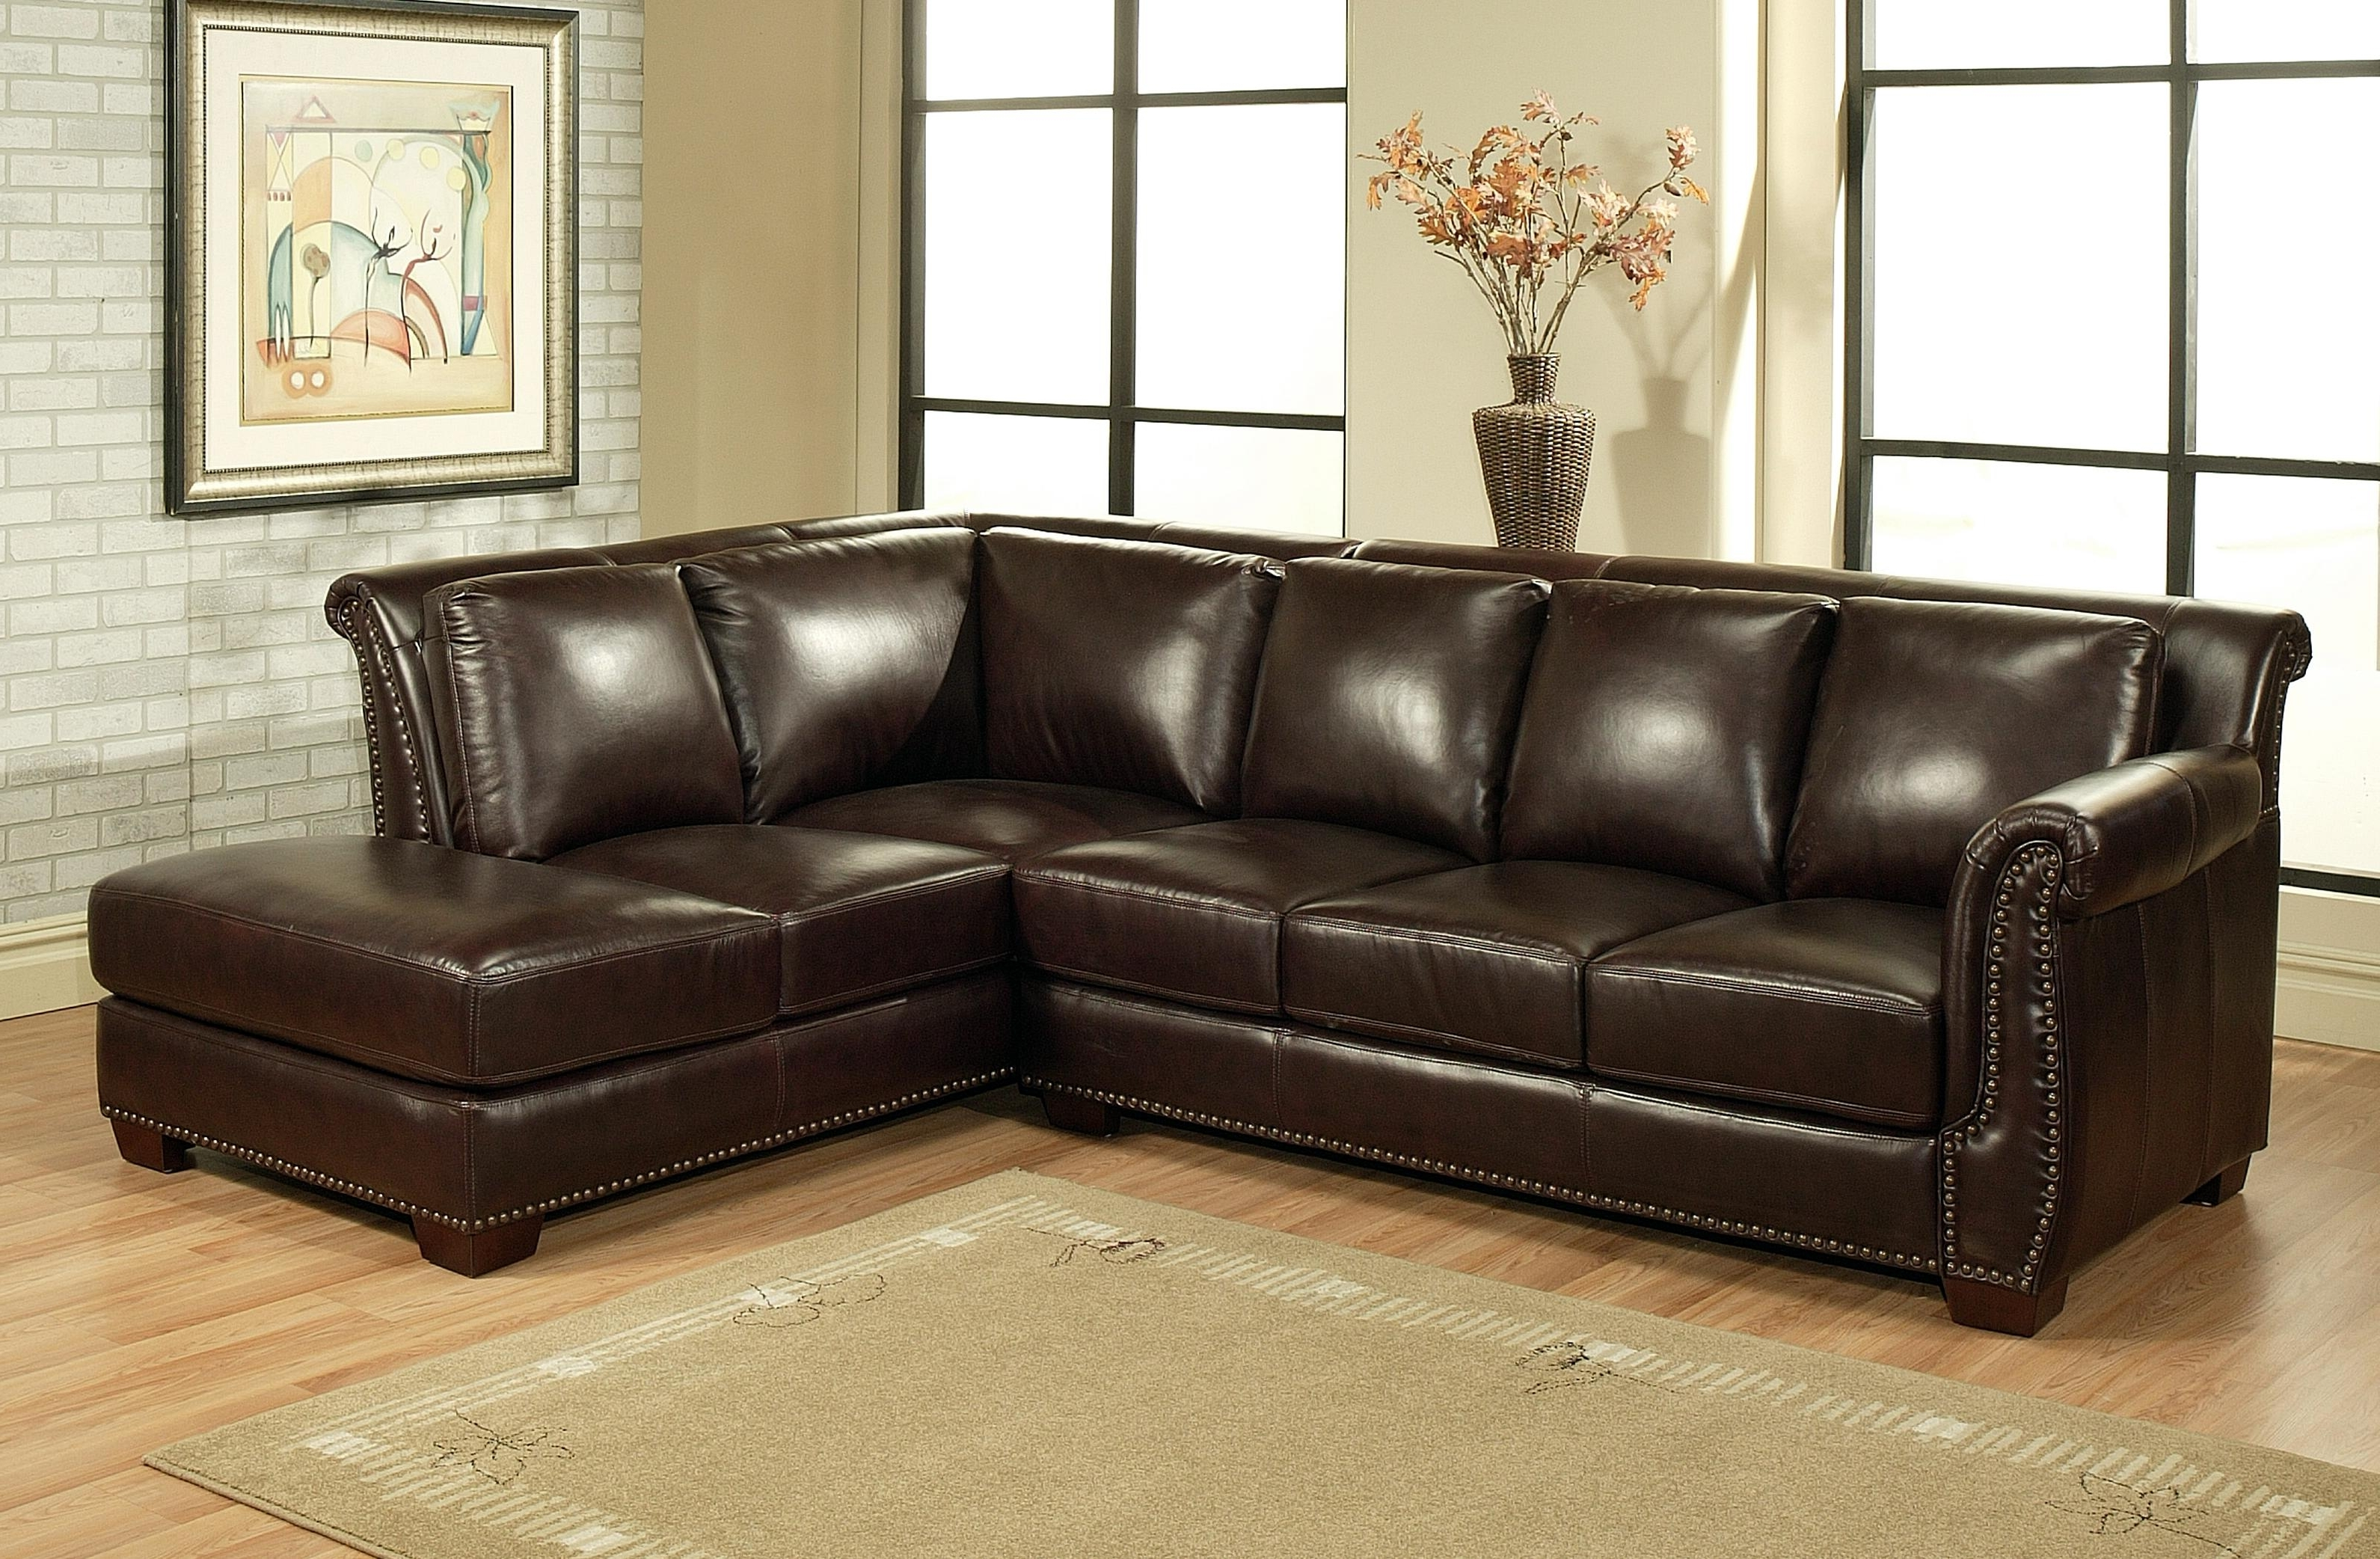 Well Liked Genuine Leather Sectionals With Chaise For Ikea Ektorp Sectional Sectional Couch Ikea Sectionals Sofas White (View 10 of 15)